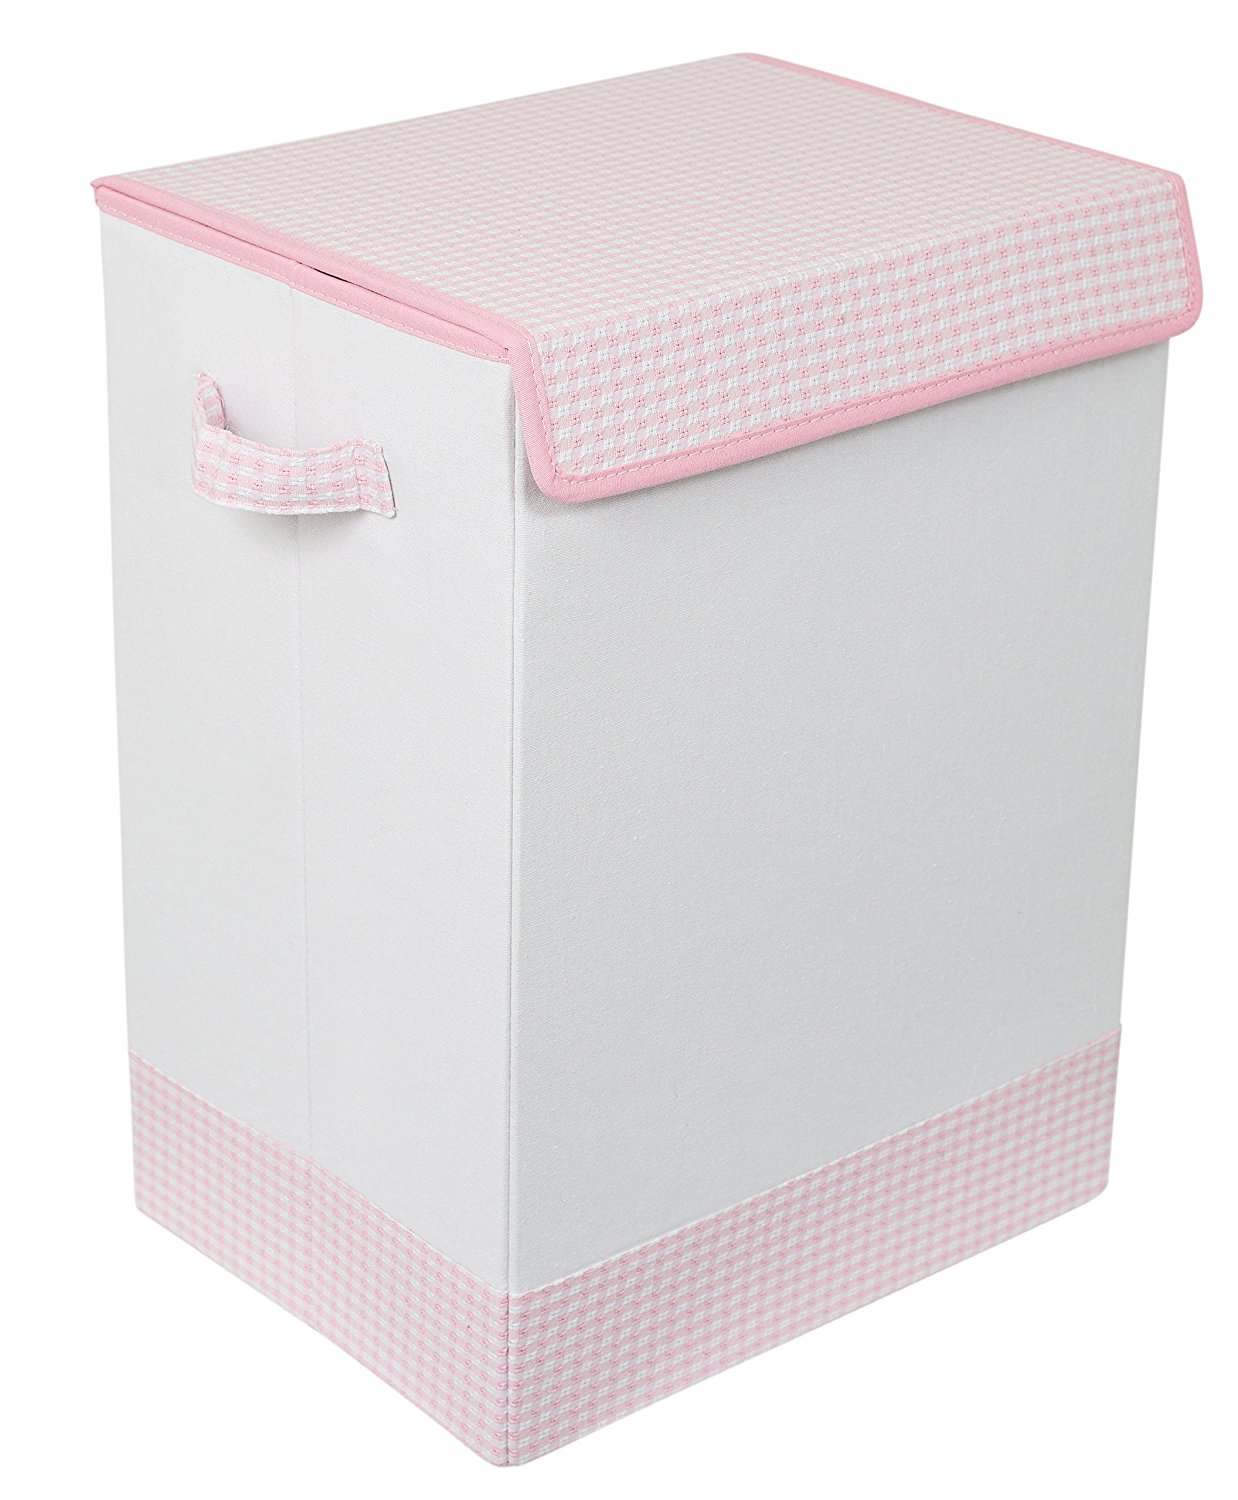 birdrock home baby clothes hamper with lid, best laundry hampers for nursery, laundry hampers for nursery, pink laundry hamper, cute laundry hamper, girls laundry hamper, affordable laundry hamper, best nursery hampers, nursery hampers